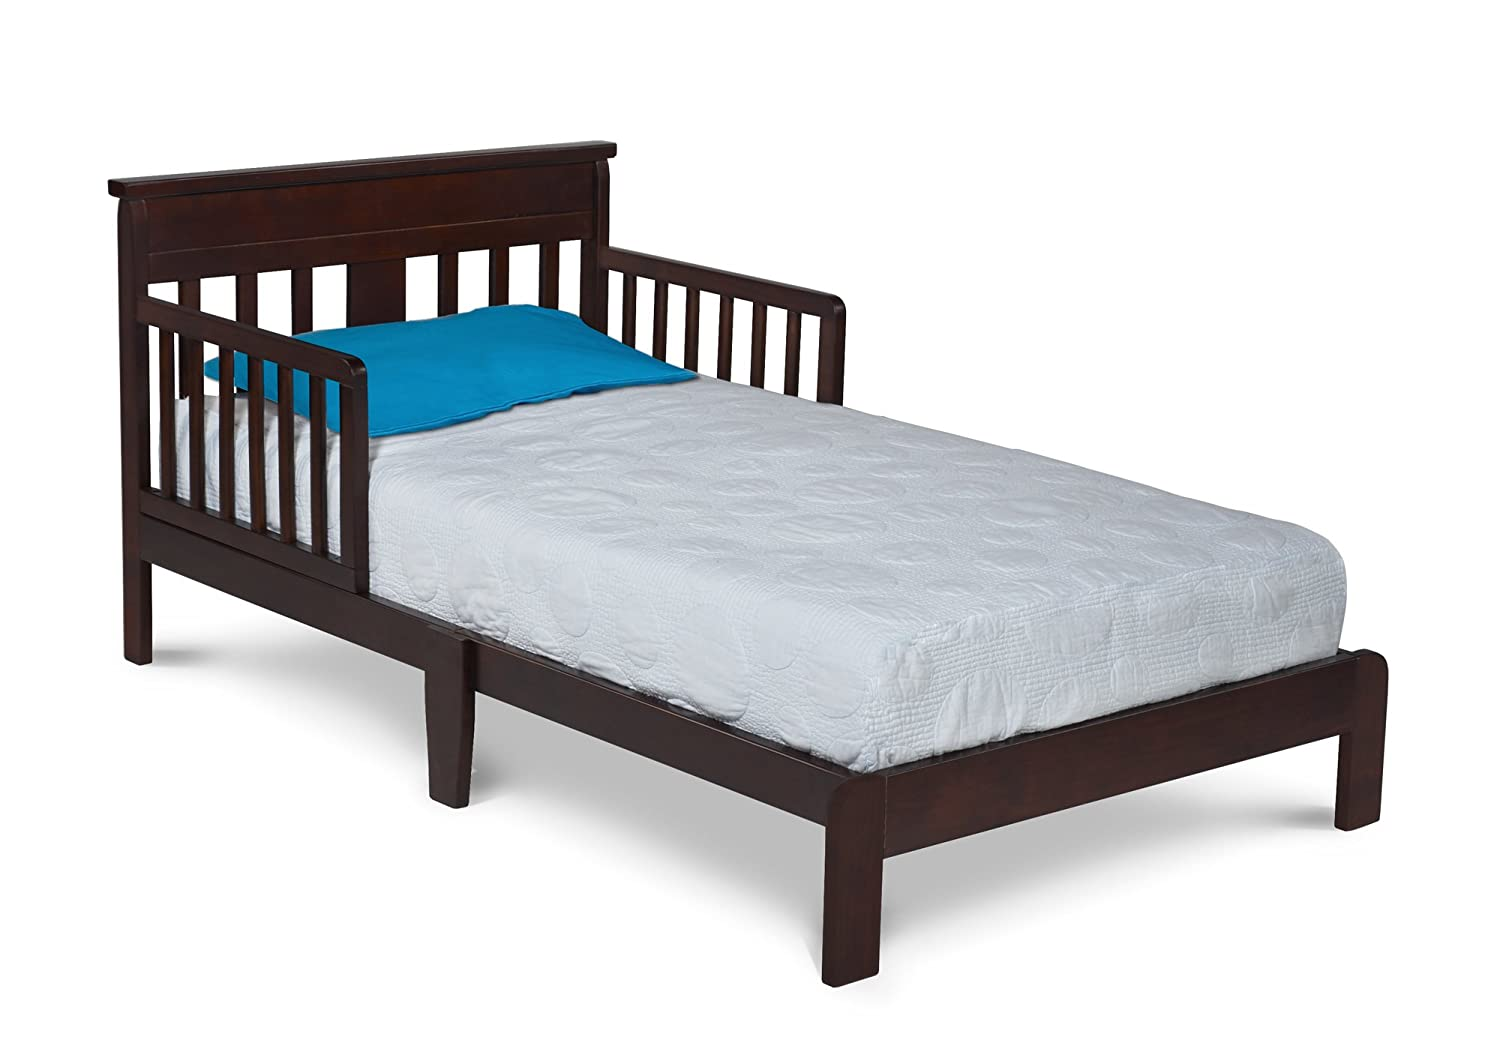 will be at easy platform part air or show collage first it so and of note erin bed my this toddler during short evening hln spain beds diy express friday march minutes segment super cheap